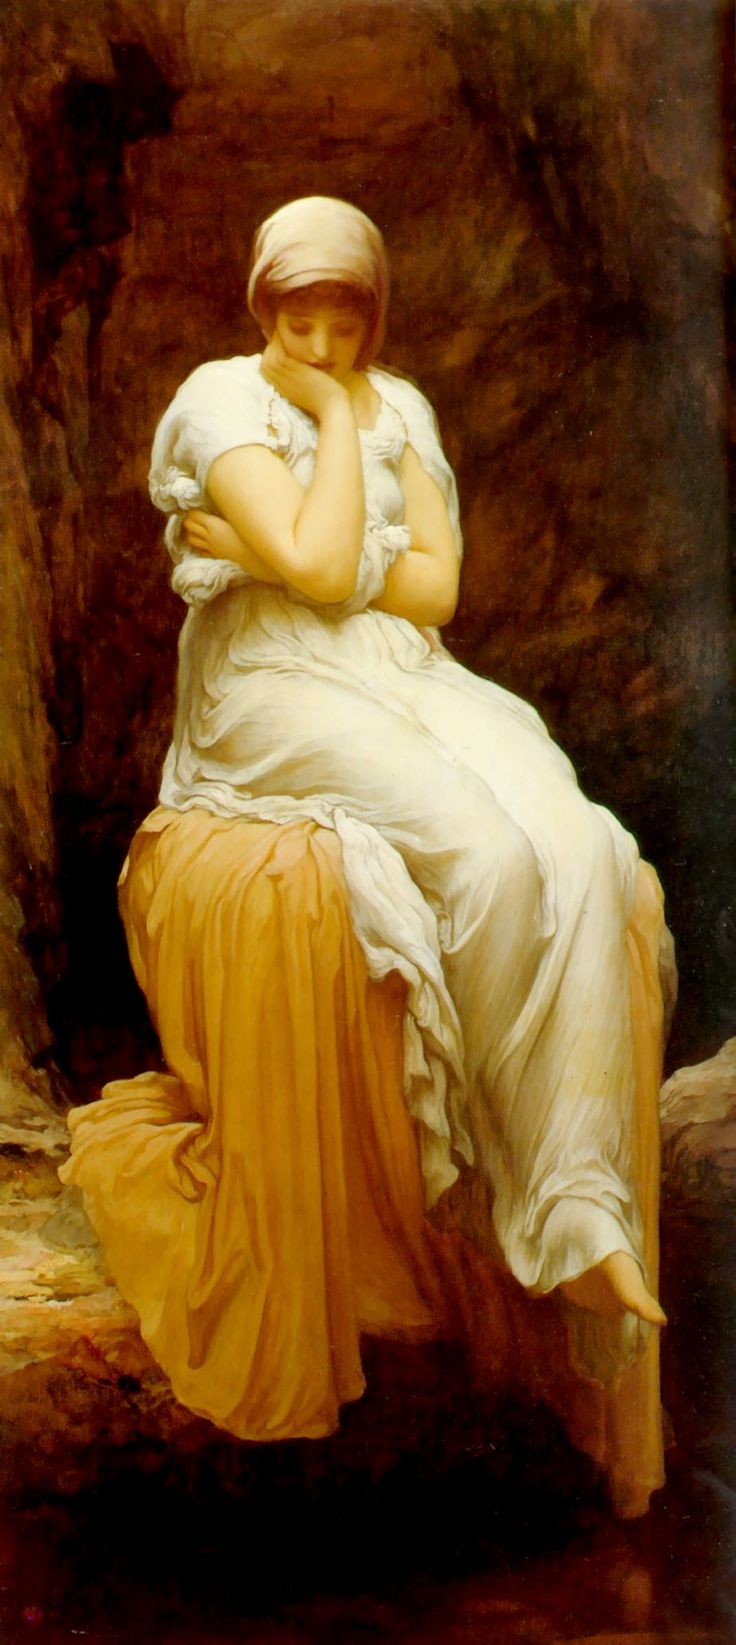 ♛Solitude - Frederic Leighton. Leighton is a master of painting fabric.